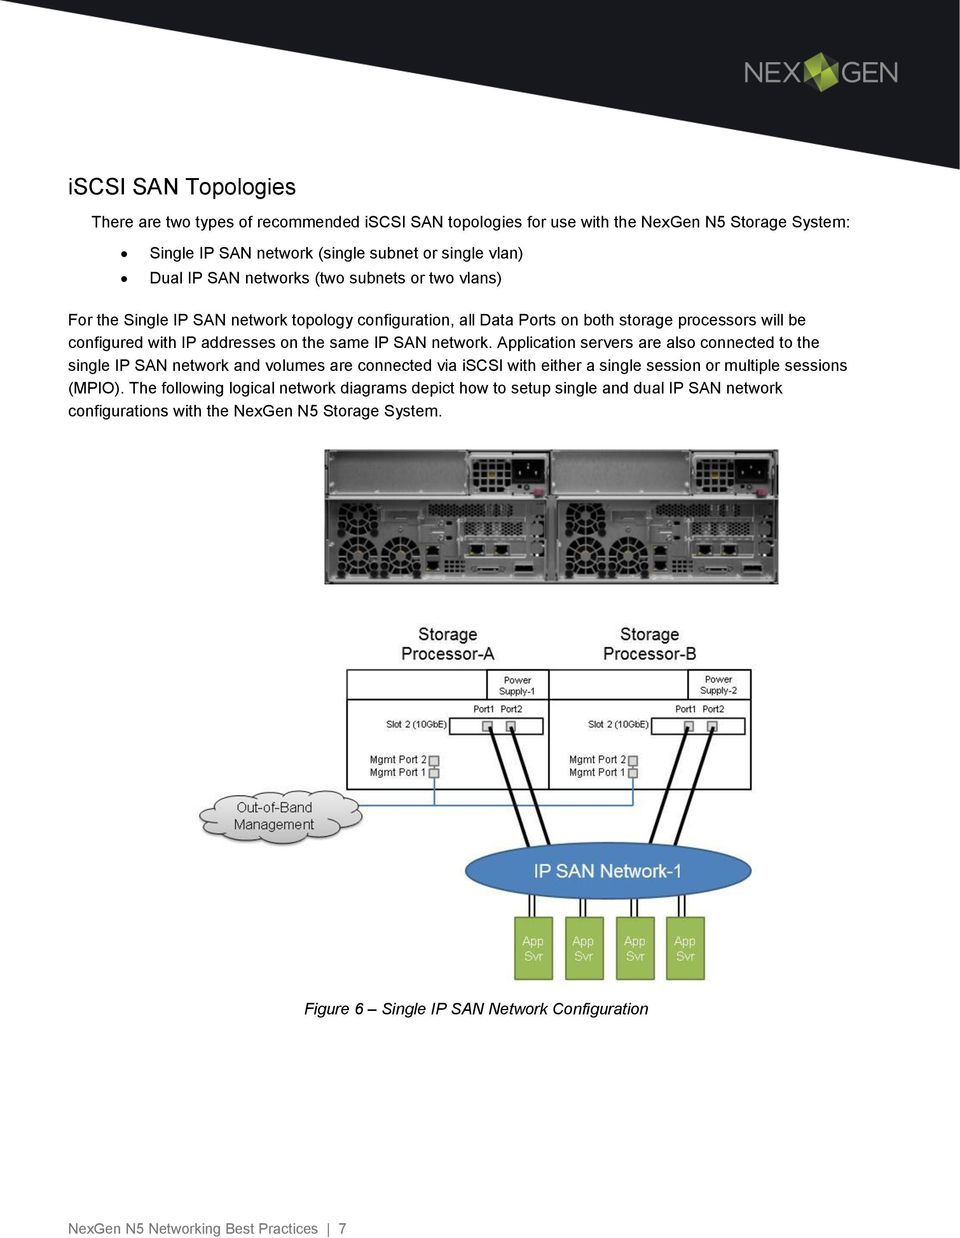 N5 Networking Best Practices Pdf There Any Sort Of Diagram Or Picture That Depicts The Twin Turbo Air Network Application Servers Are Also Connected To Single Ip San And Volumes